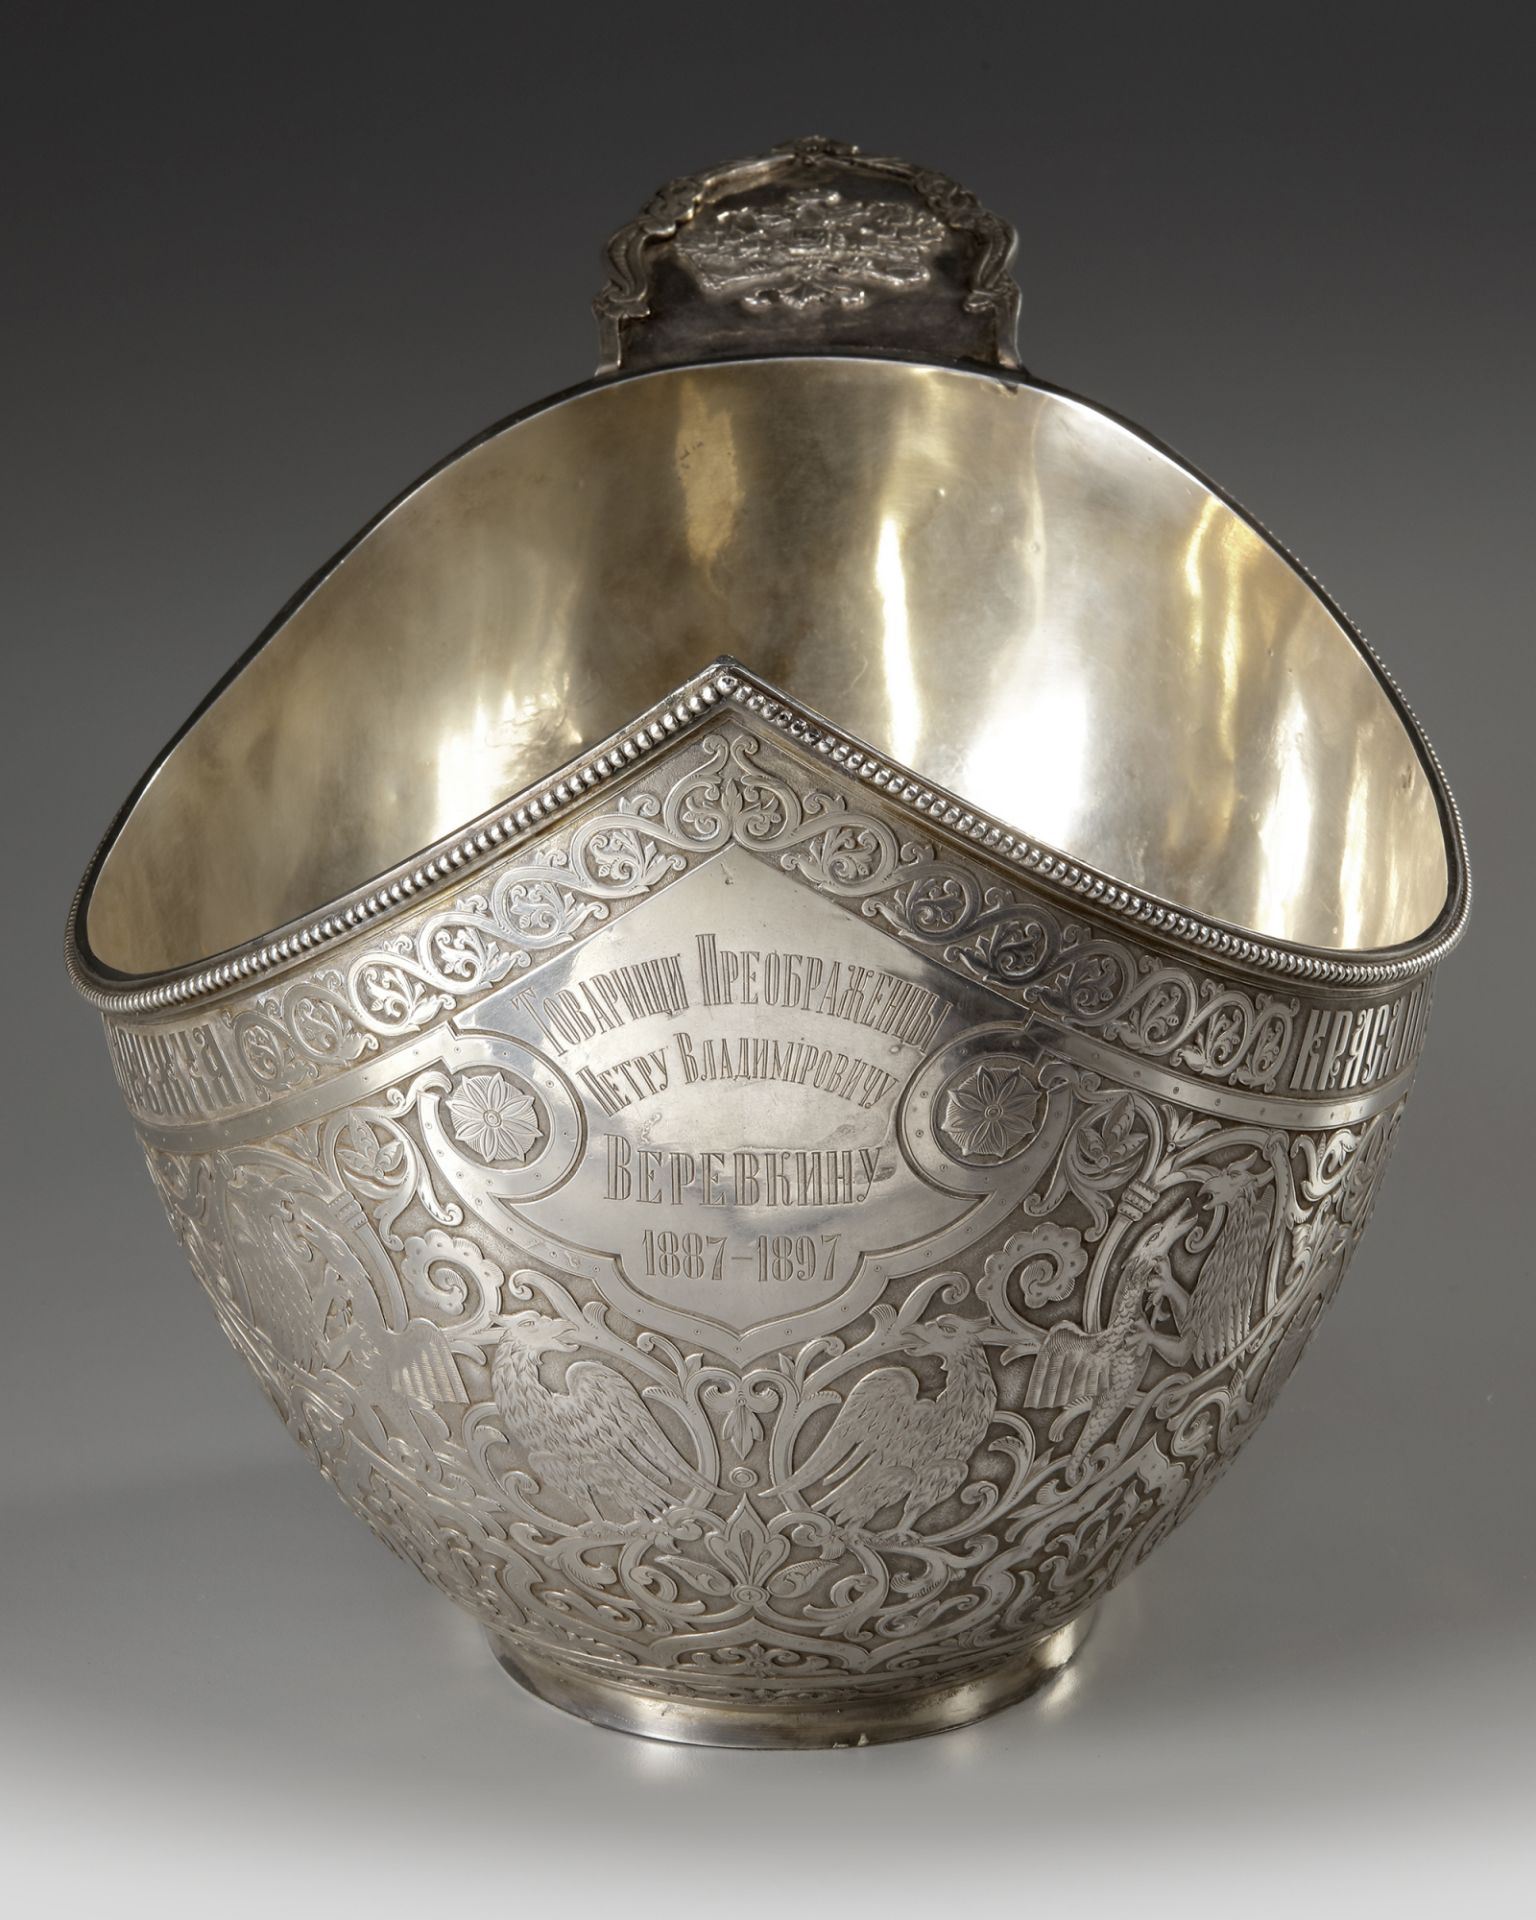 A LARGE RUSSIAN IMPERIAL SILVER KOVSCH BOWL, LATE 19TH CENTURY - Image 7 of 8